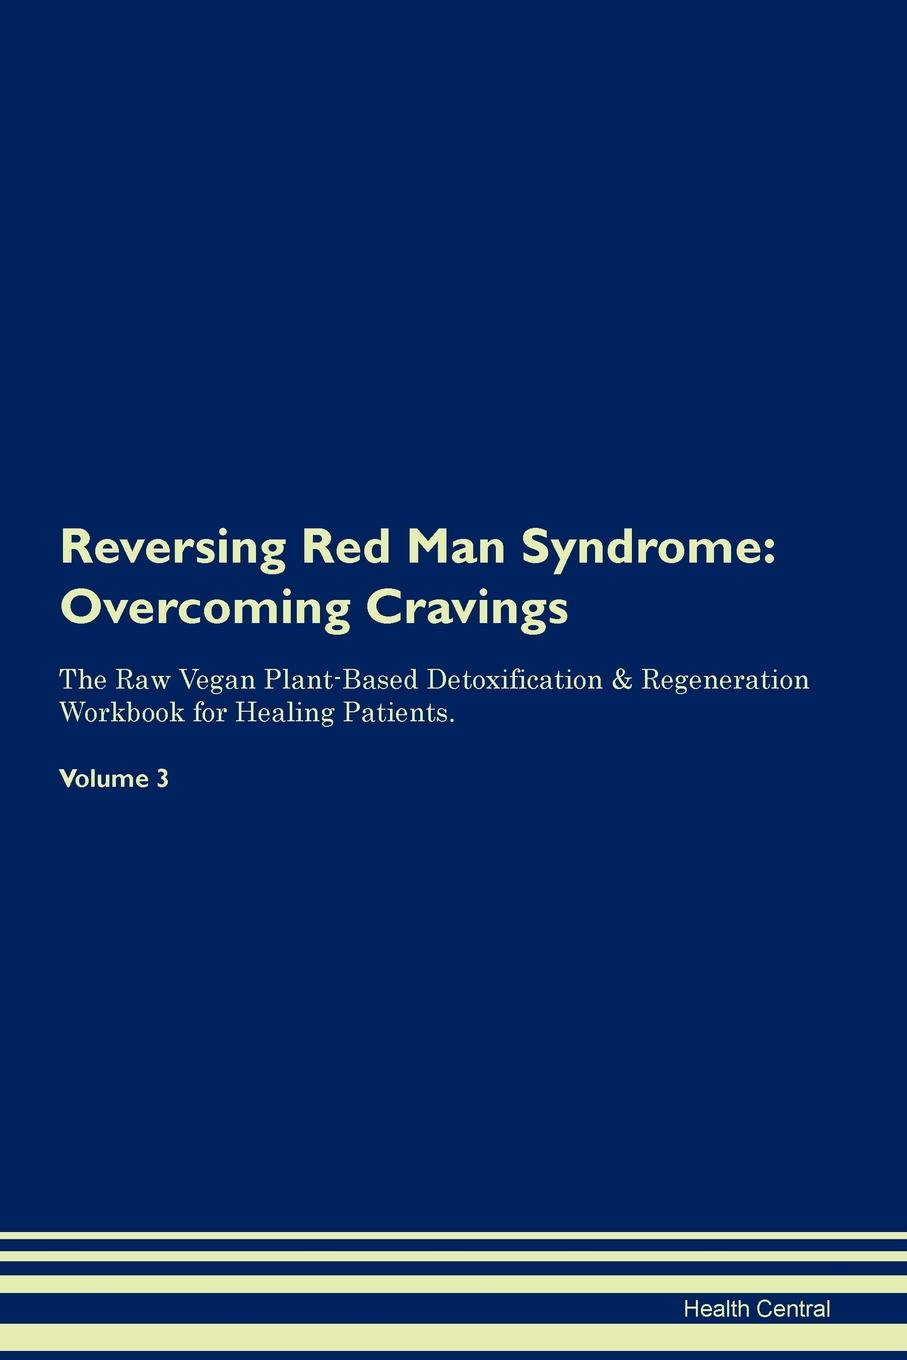 Health Central Reversing Red Man Syndrome. Overcoming Cravings The Raw Vegan Plant-Based Detoxification . Regeneration Workbook for Healing Patients. Volume 3